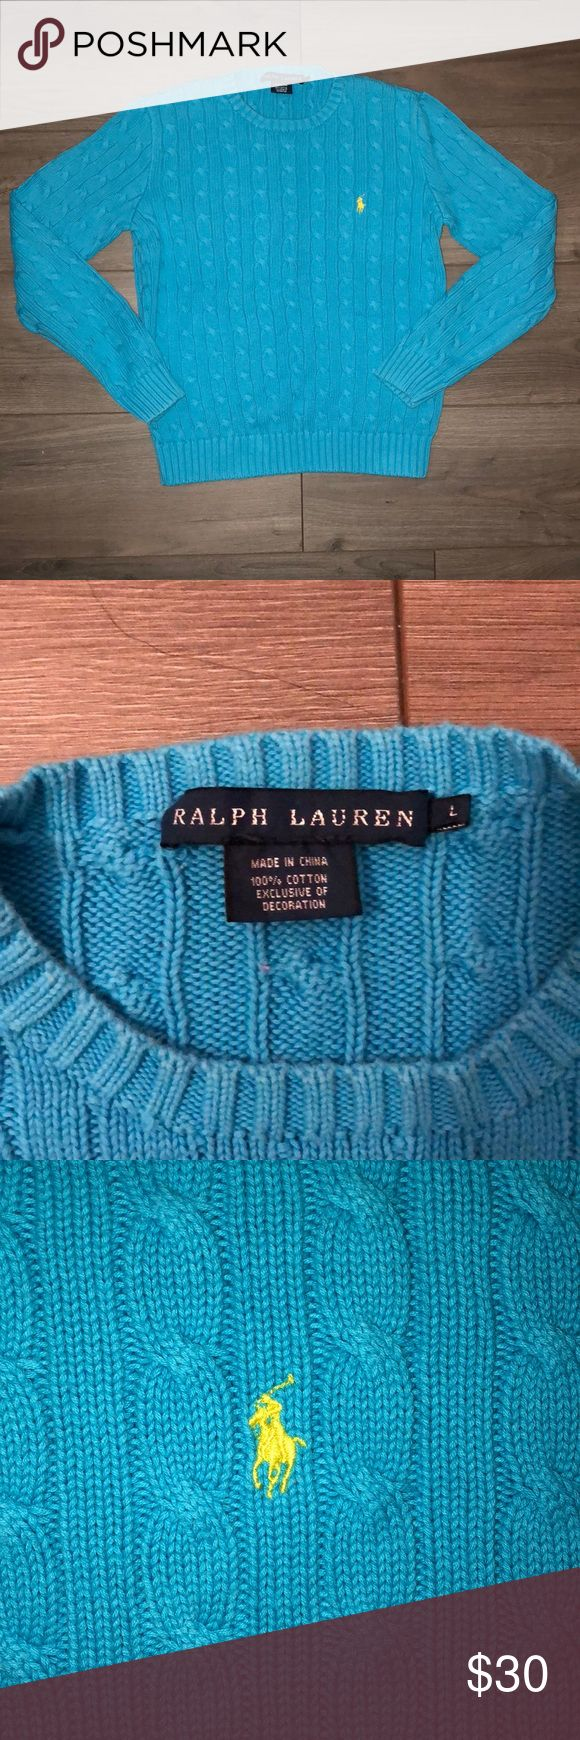 POLO SWEATSHIRT Polo Ralph Lauren.Cable knit sweater. Light blue. Size large. Good condition. Have a question?? Please ask!! Make a bundle with the other Ralph Lauren sweatshirts to get a discount Polo by Ralph Lauren Sweaters Crew & Scoop Necks